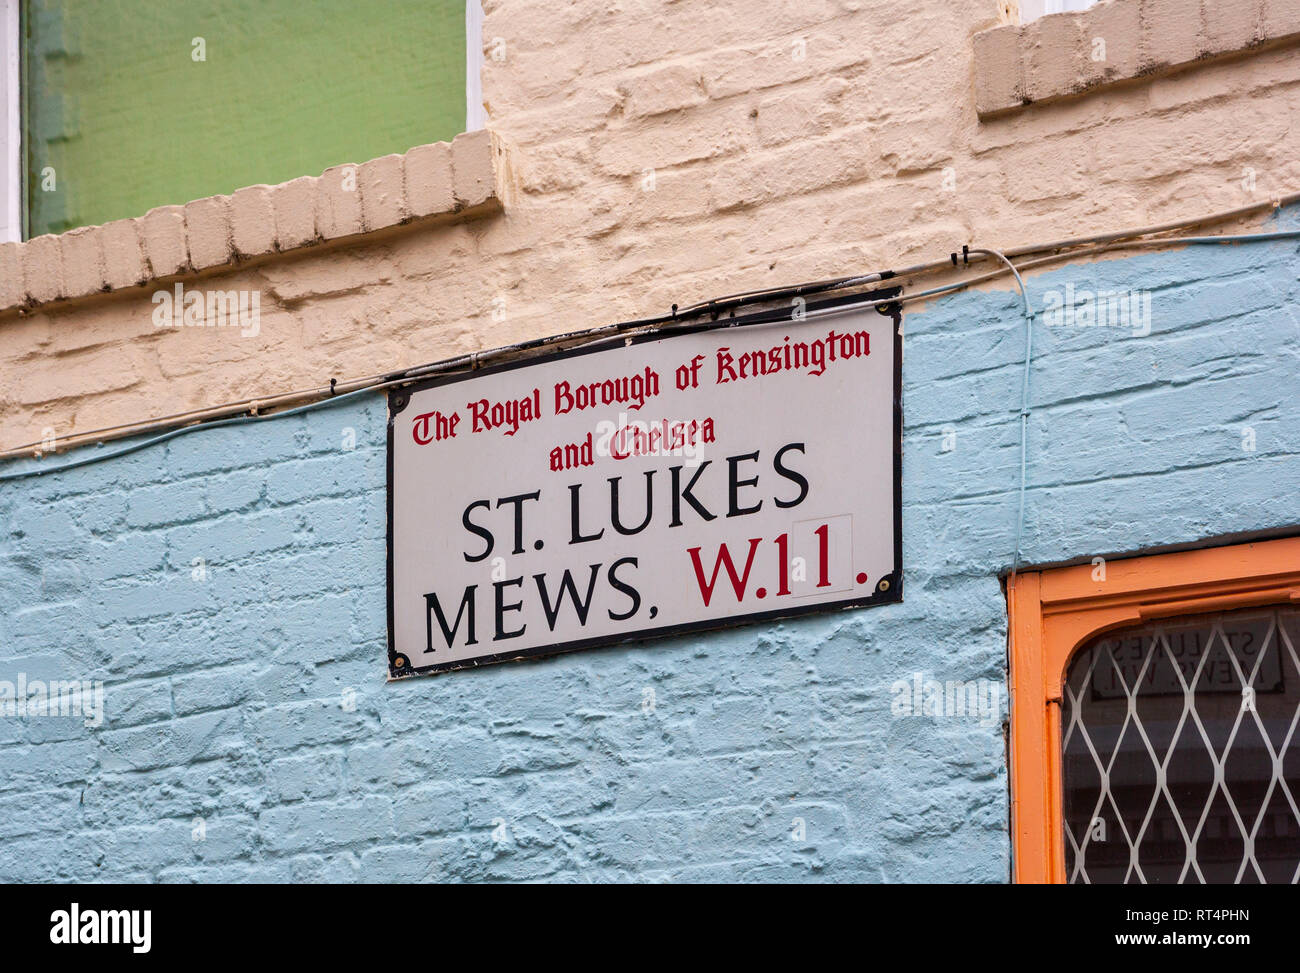 St Luke's Mews street sign, Notting Hill, London - Stock Image